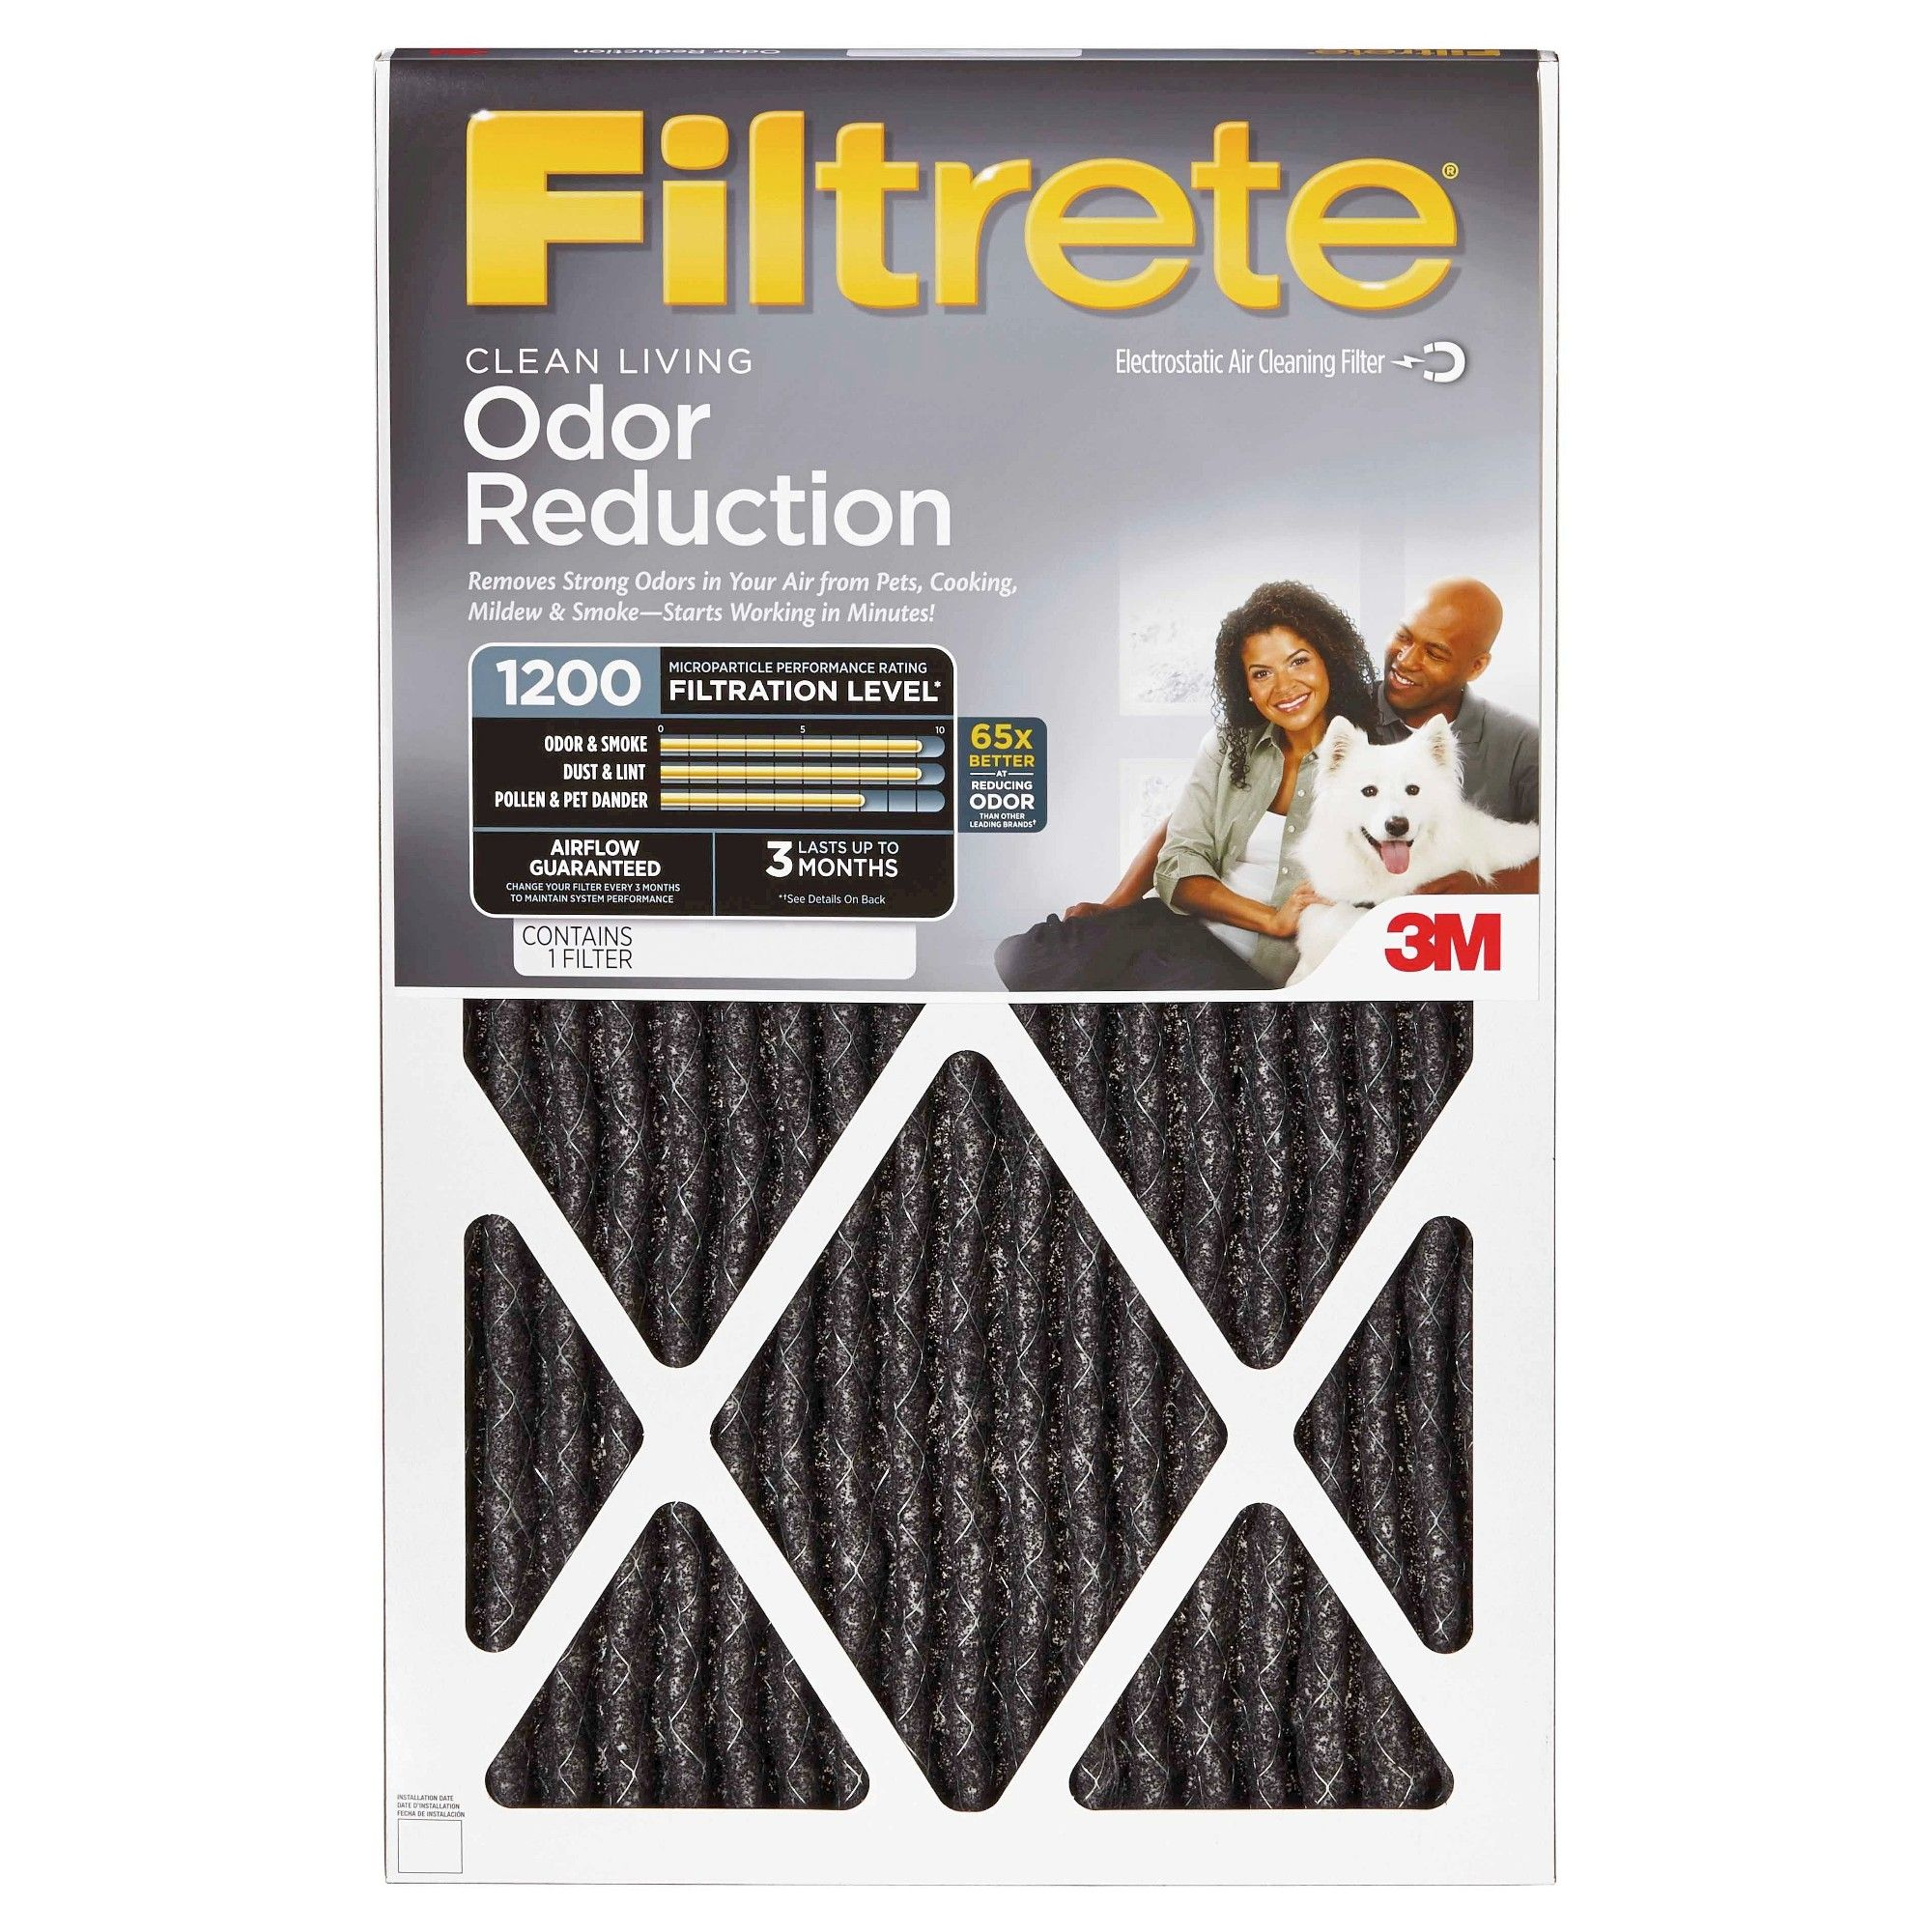 Filtrete Odor Reduction 20x20 x1, Air Filter, White